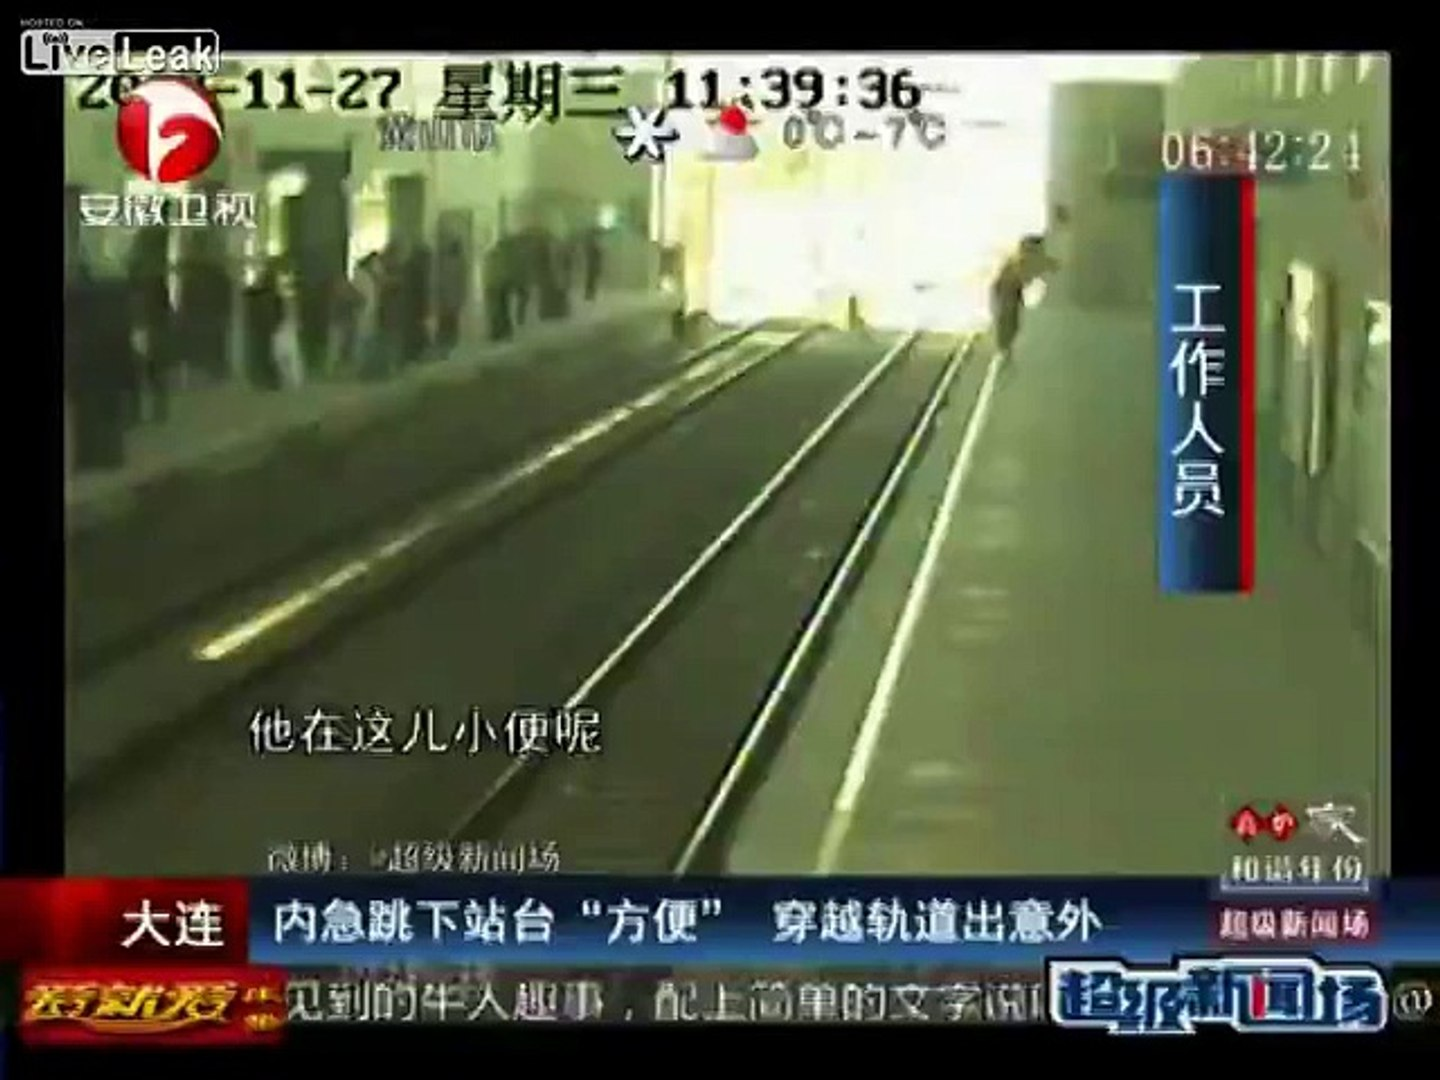 LiveLeak com - Man gets crushed to death by train when returning to platform